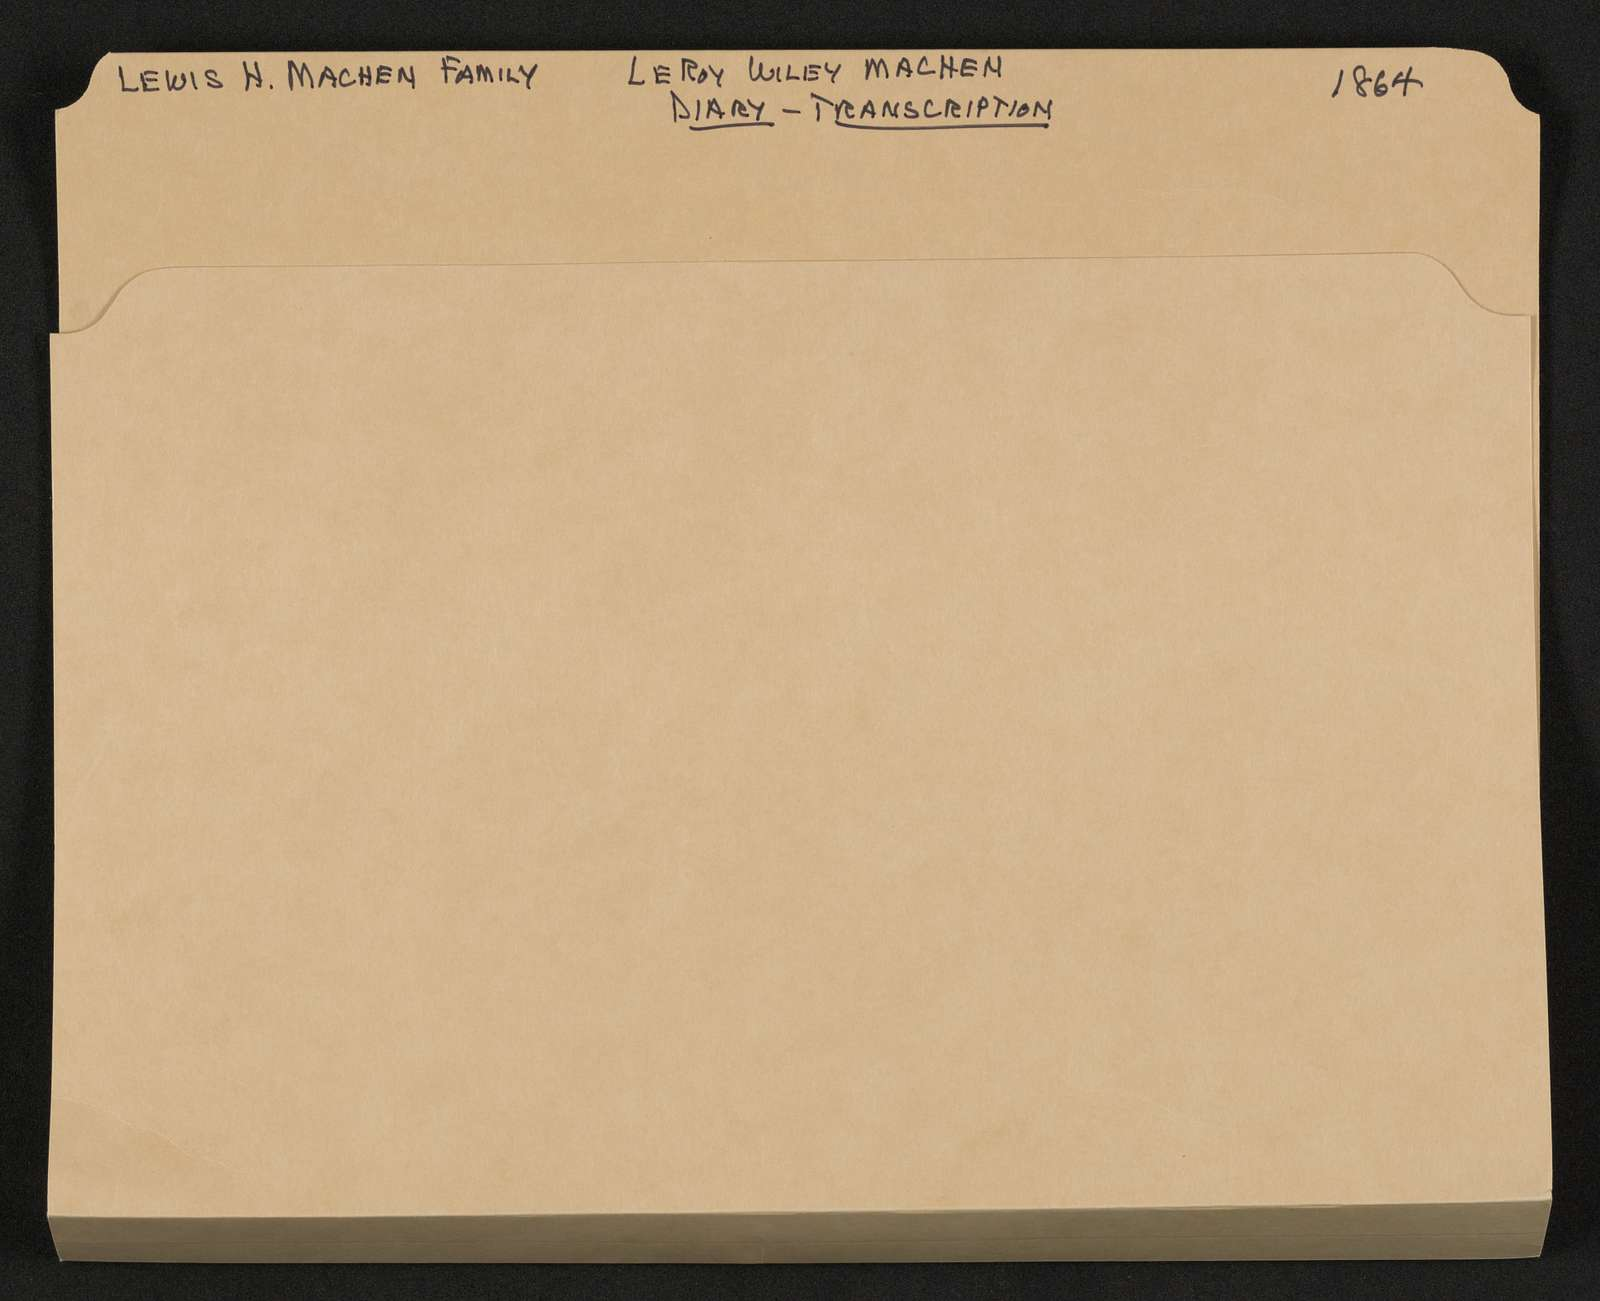 Lewis H. Machen Family Papers: Diaries and Diary Transcriptions, 1860-1865; Diaries; Gresham, LeRoy Wiley; Transcriptions; 1864